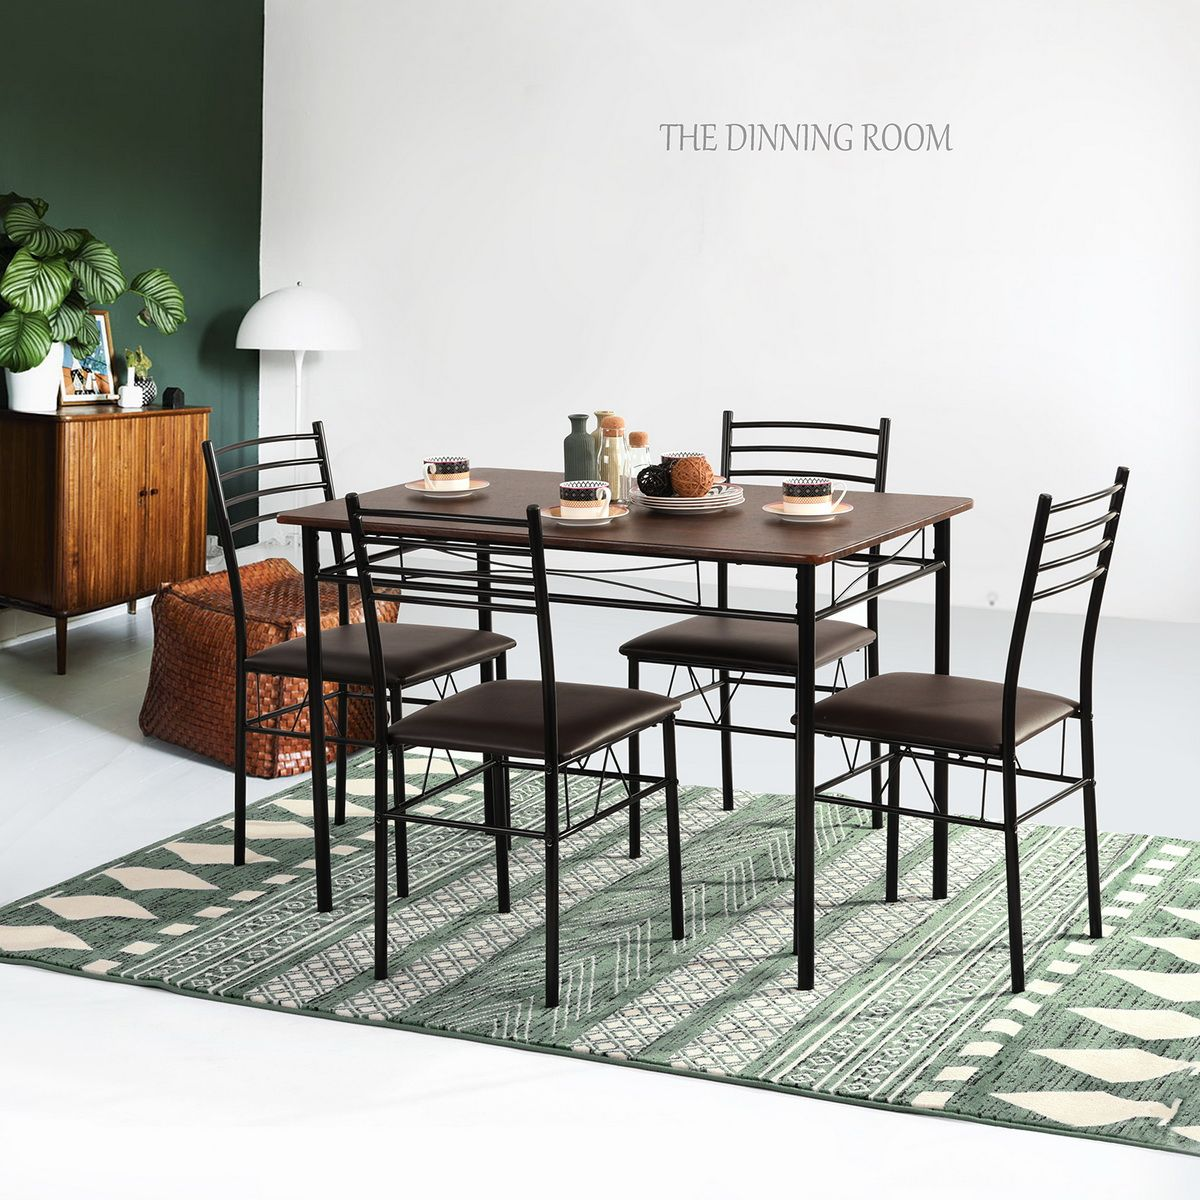 4 Seater 100cm Dining Table Set Walnut Metal Dining 5 Piece Kitchen Room Set Dining Table Simple Furniture Dining